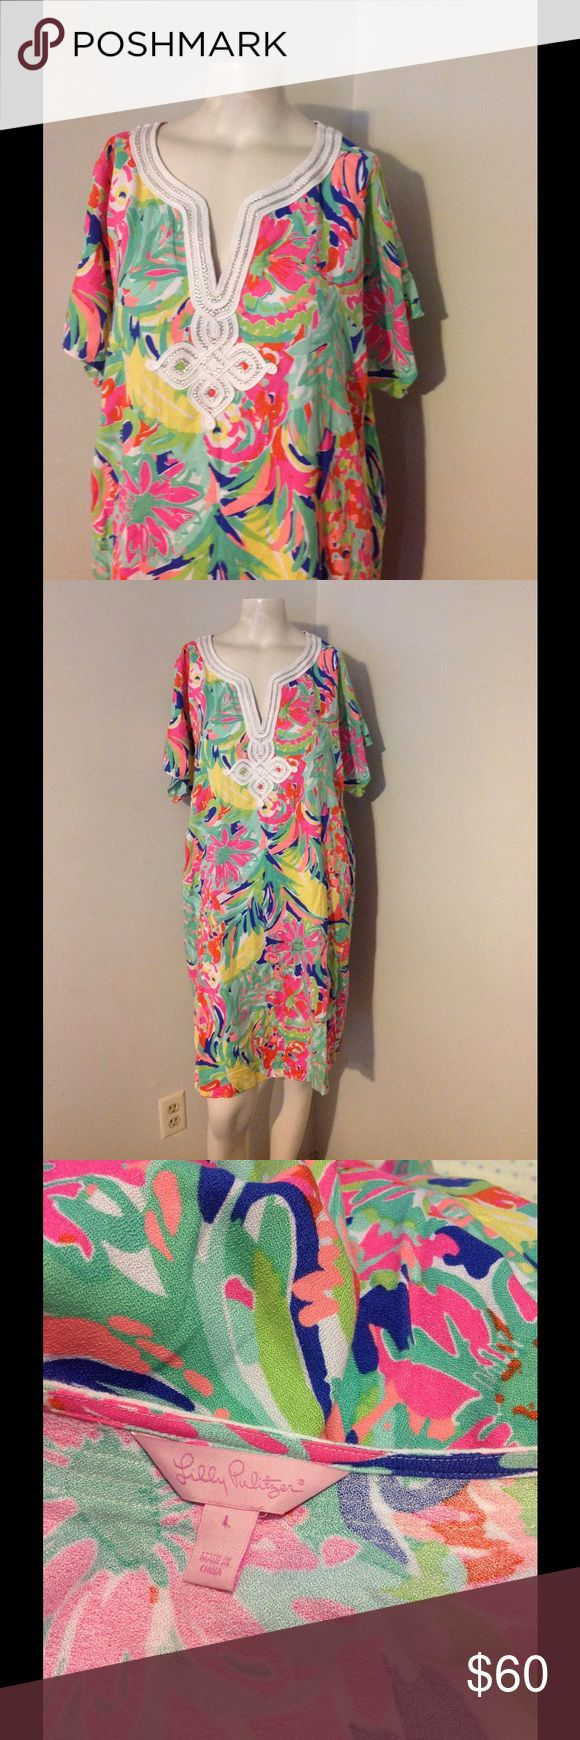 "Lilly Pulitzer Floral Print Rayon Sheath Dress L Beautiful Lilly dress. Made of rayon in size Large. Seems to run big. Great condition. Chest 47"" Hips 48"" Length 37"" Lilly Pulitzer Dresses"